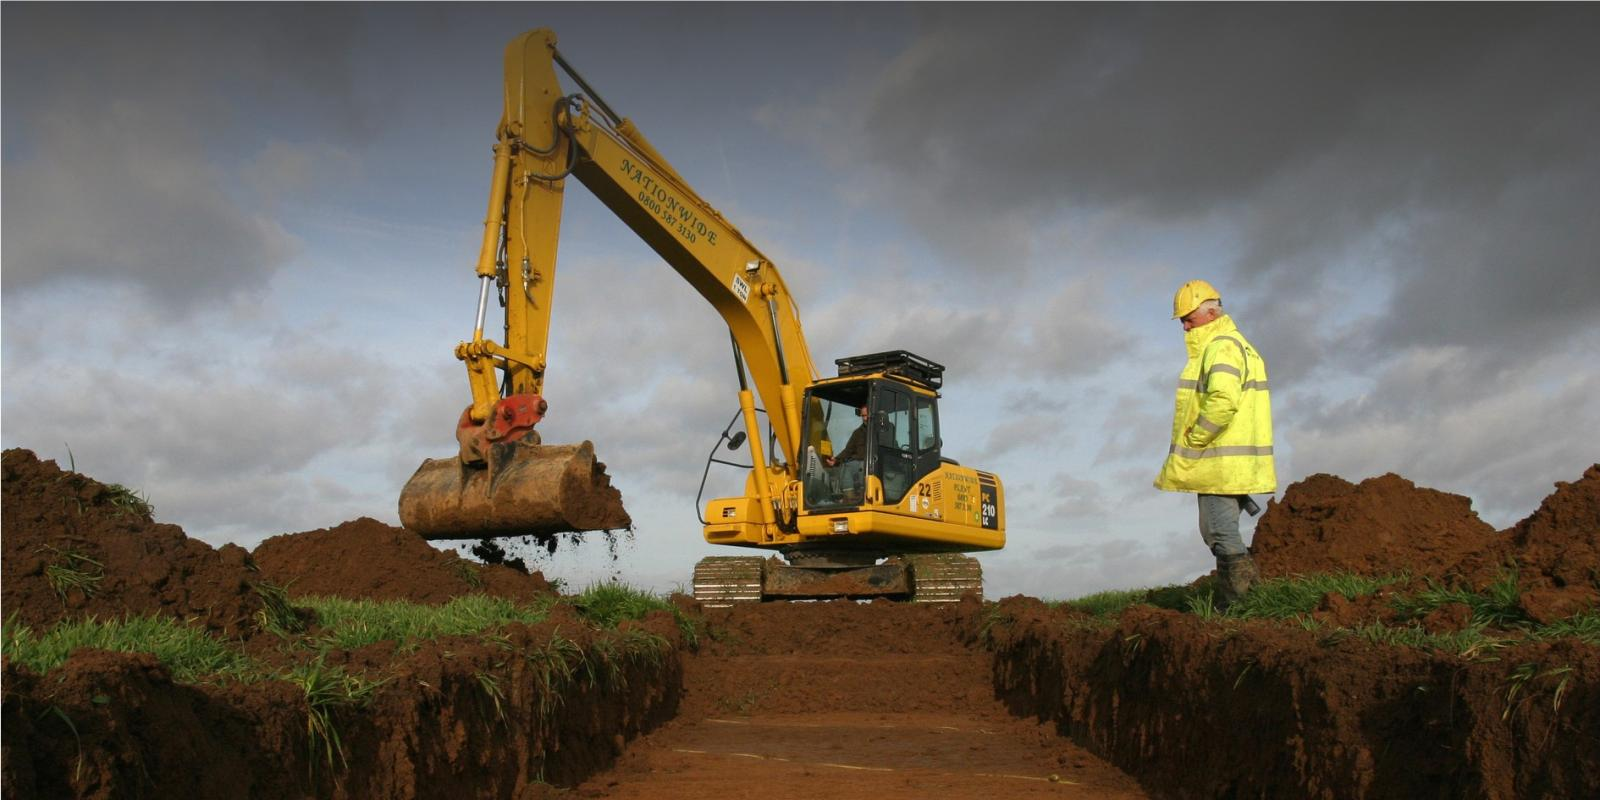 Trenching Machines Working : Evaluation trial trenching wessex archaeology